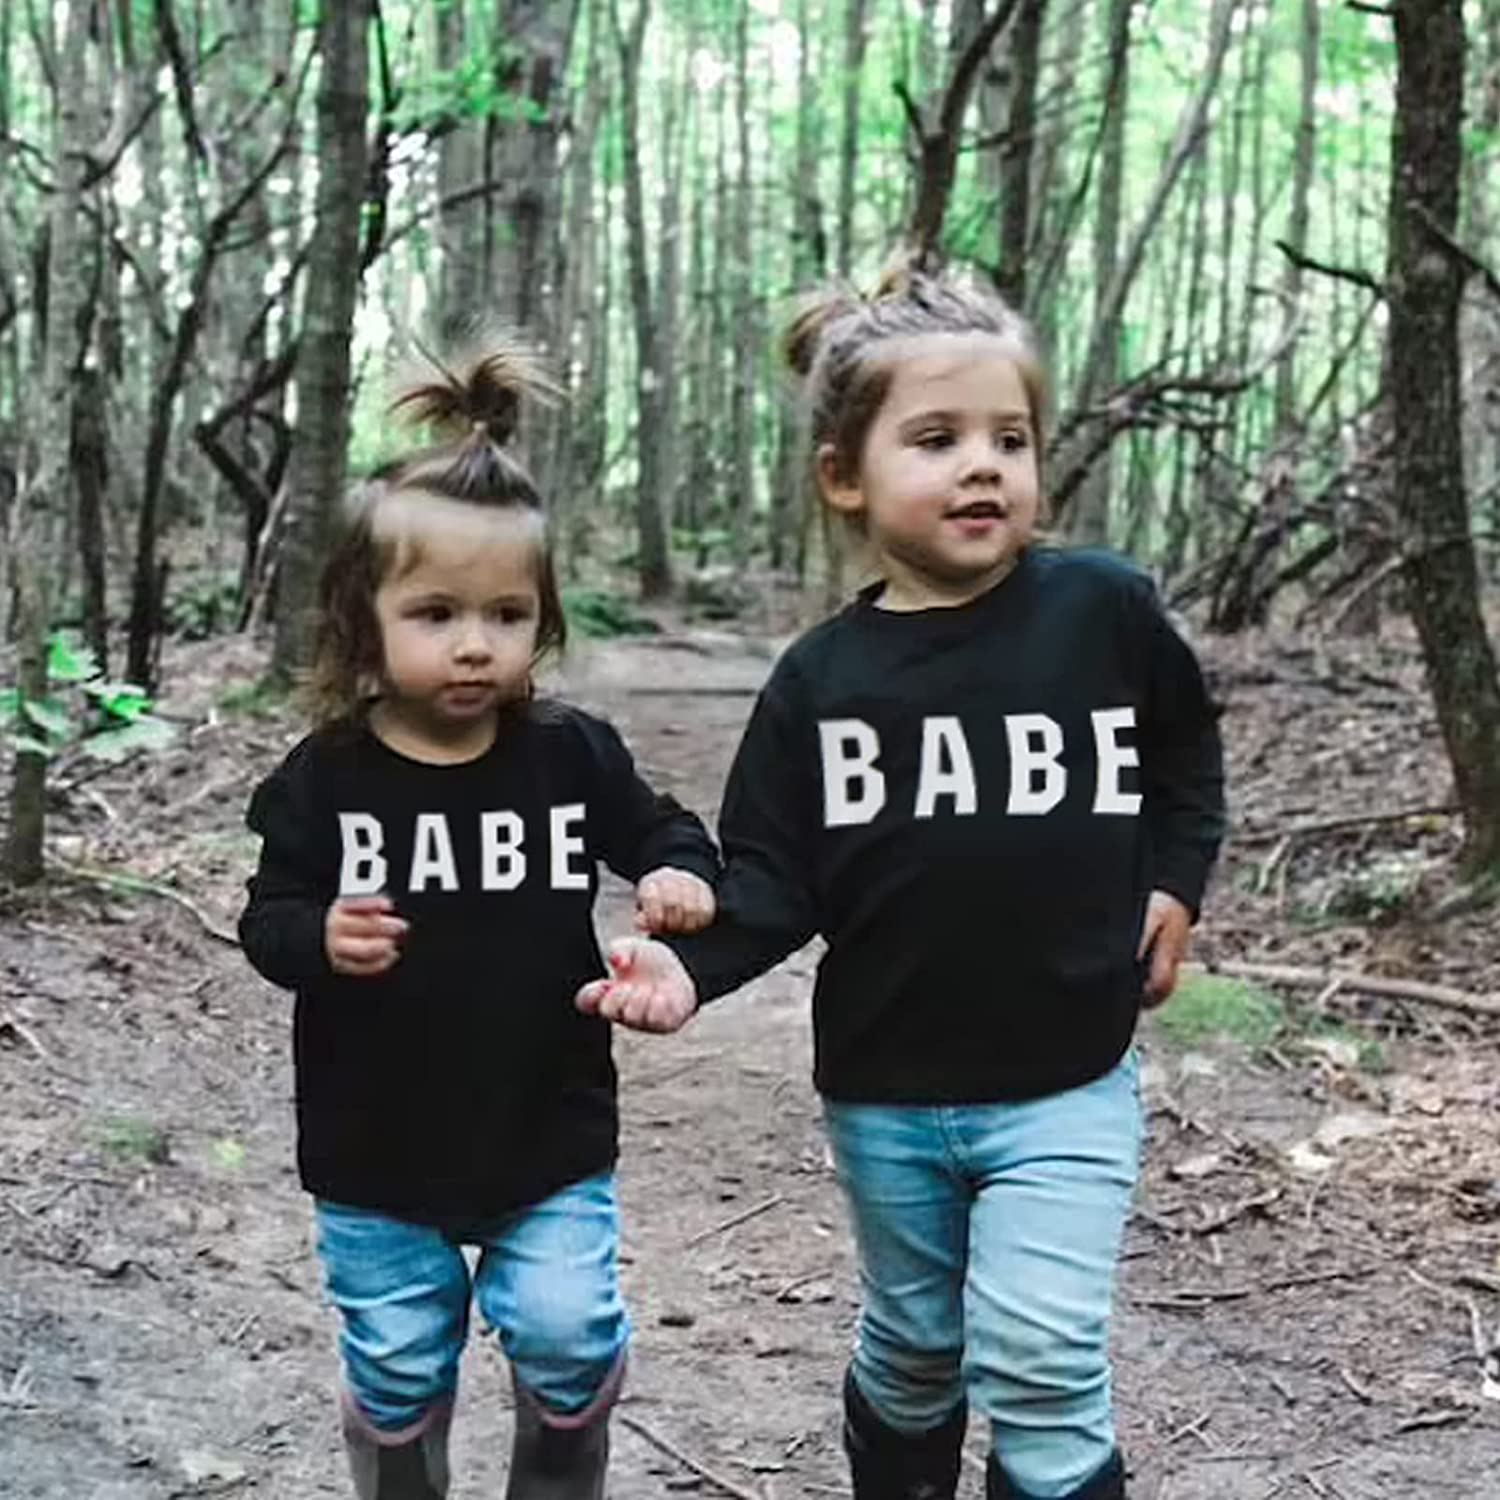 Newborn Baby Boys Girls Clothes Babe Sweatshirt Tops Infant Toddler Letter Print Pullover Casual Autumn Tops 0-3Y